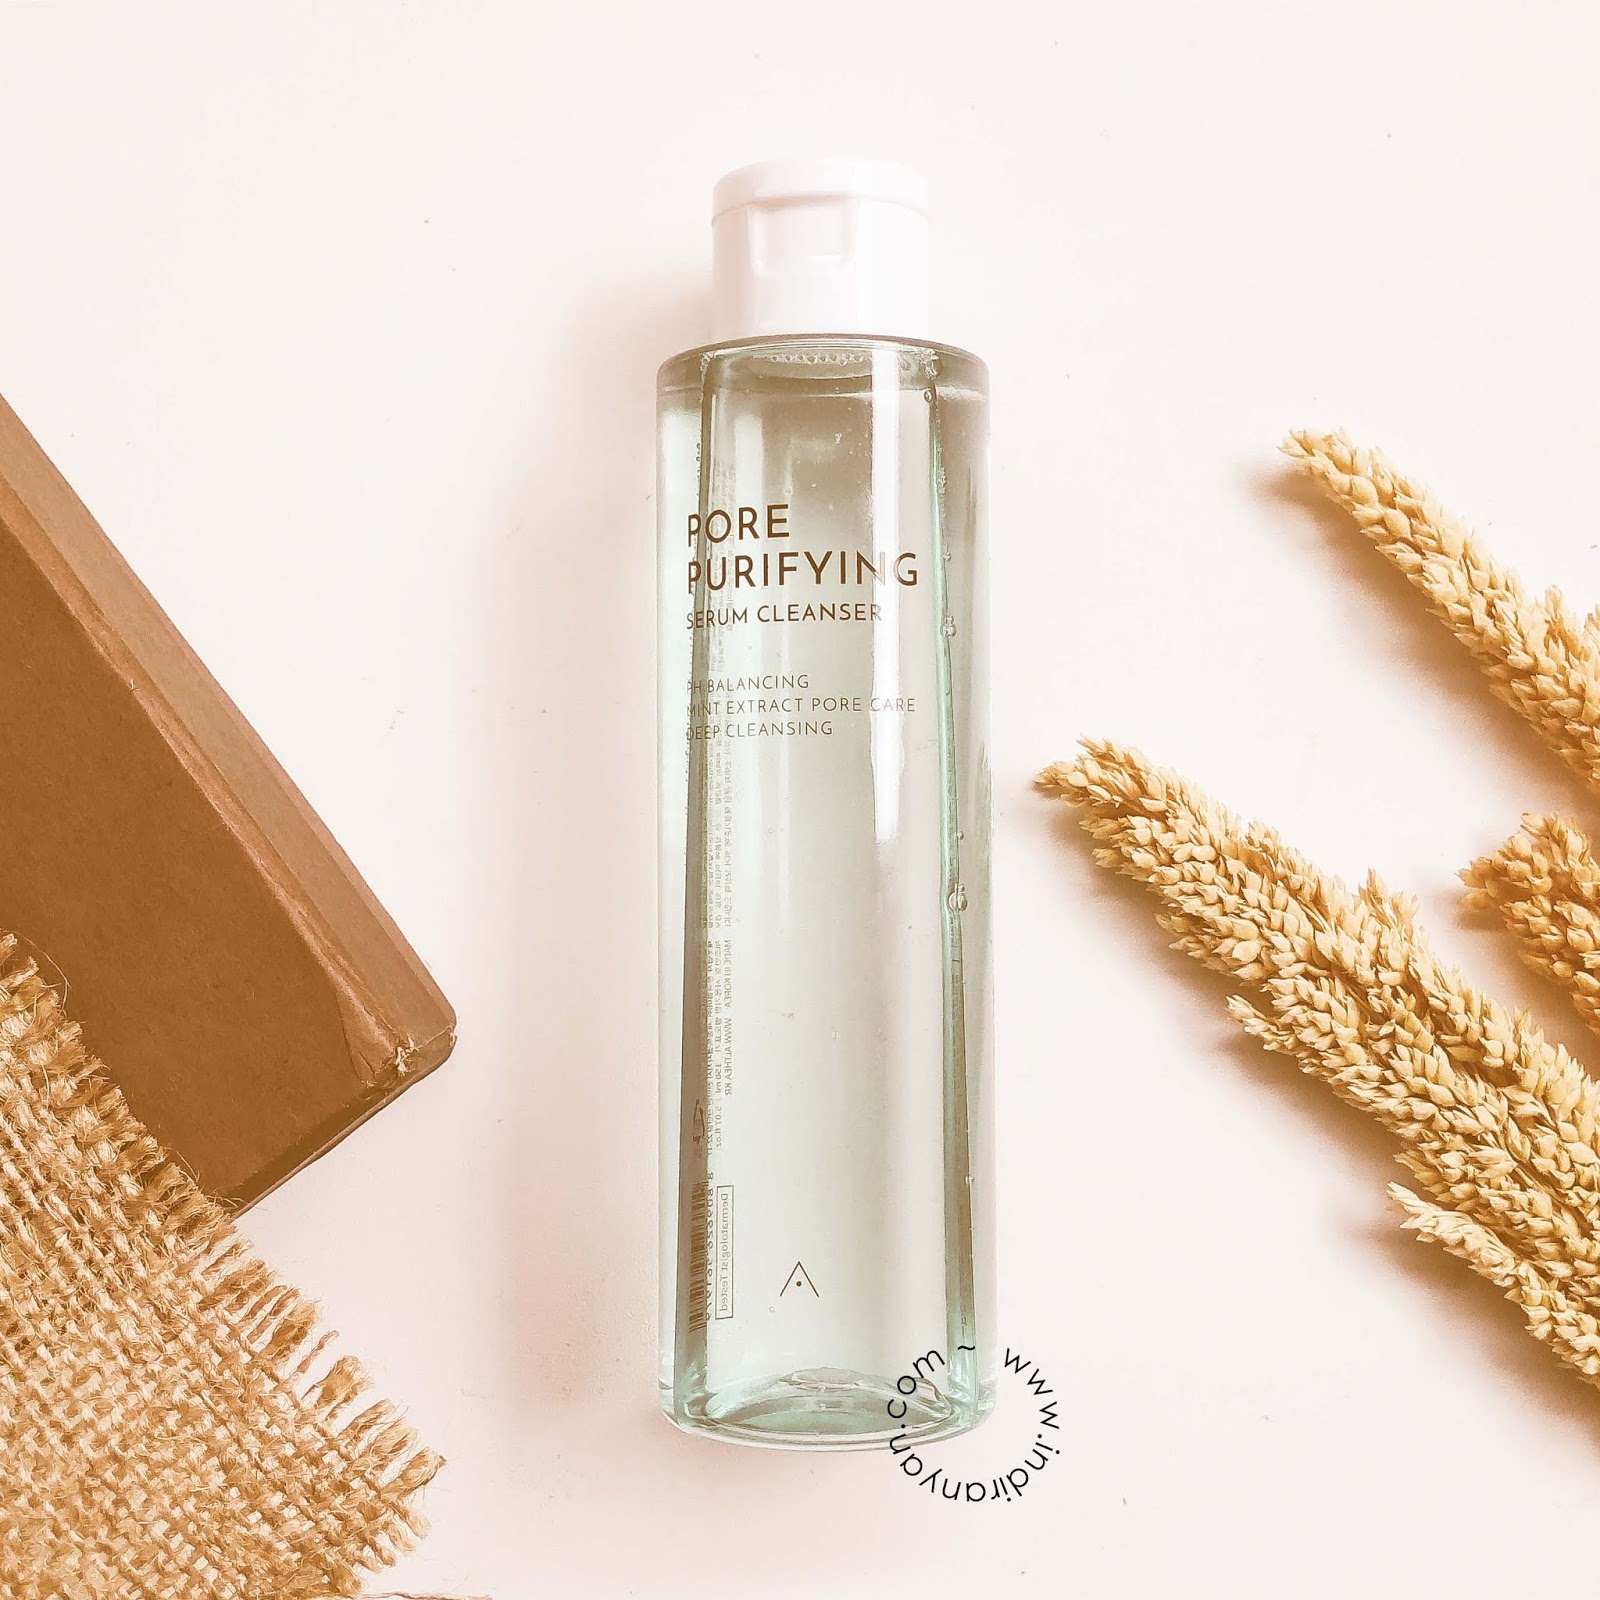 althea-pore-purifying-serum-cleanser